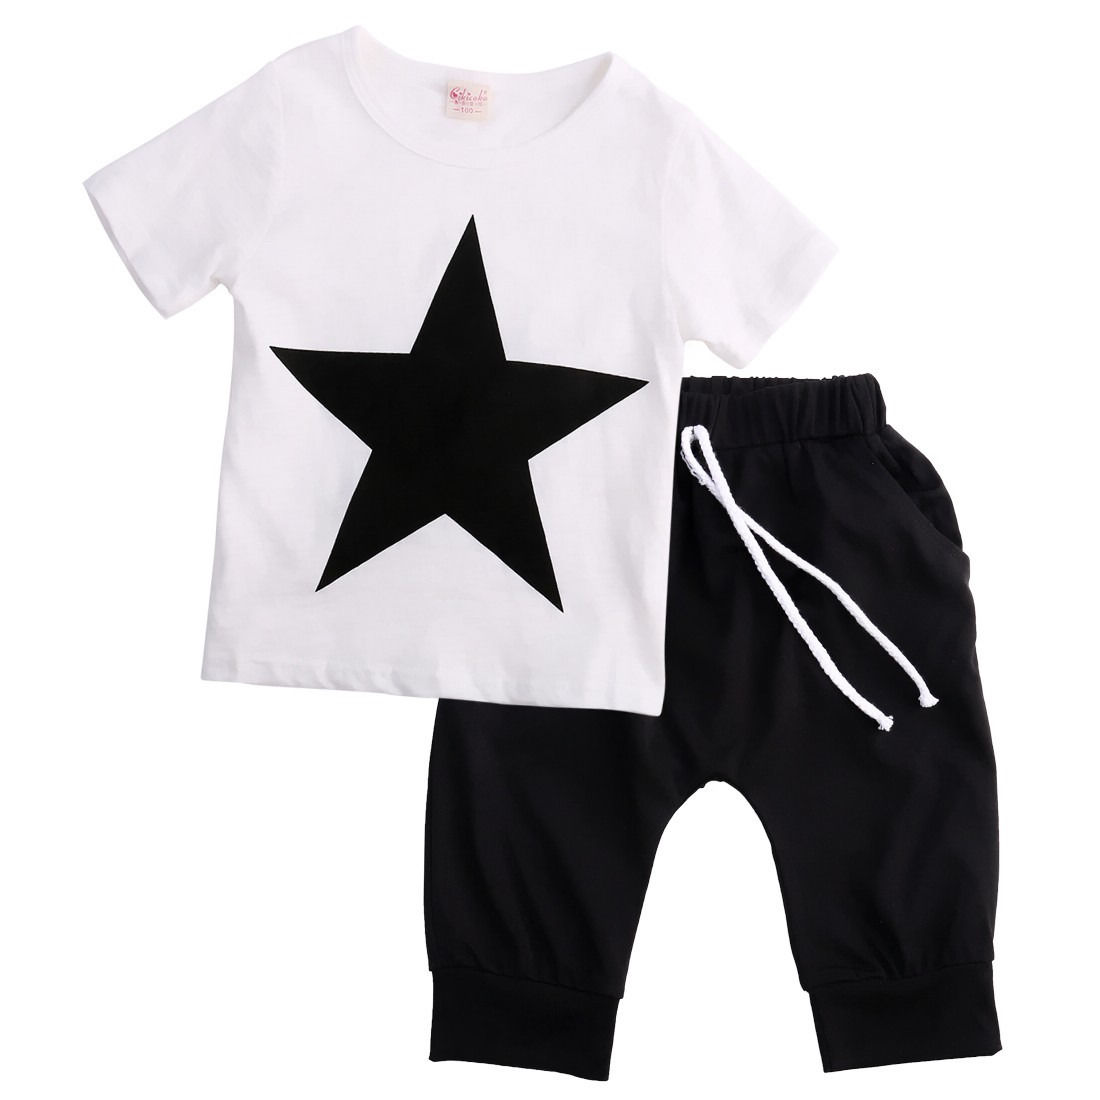 Toddler-Kids-Baby-Boys-Clothes-Star-T-shirt-Tops-Harem-Pants-2pcs-Outfits-Clothing-Set-2-7Y-1